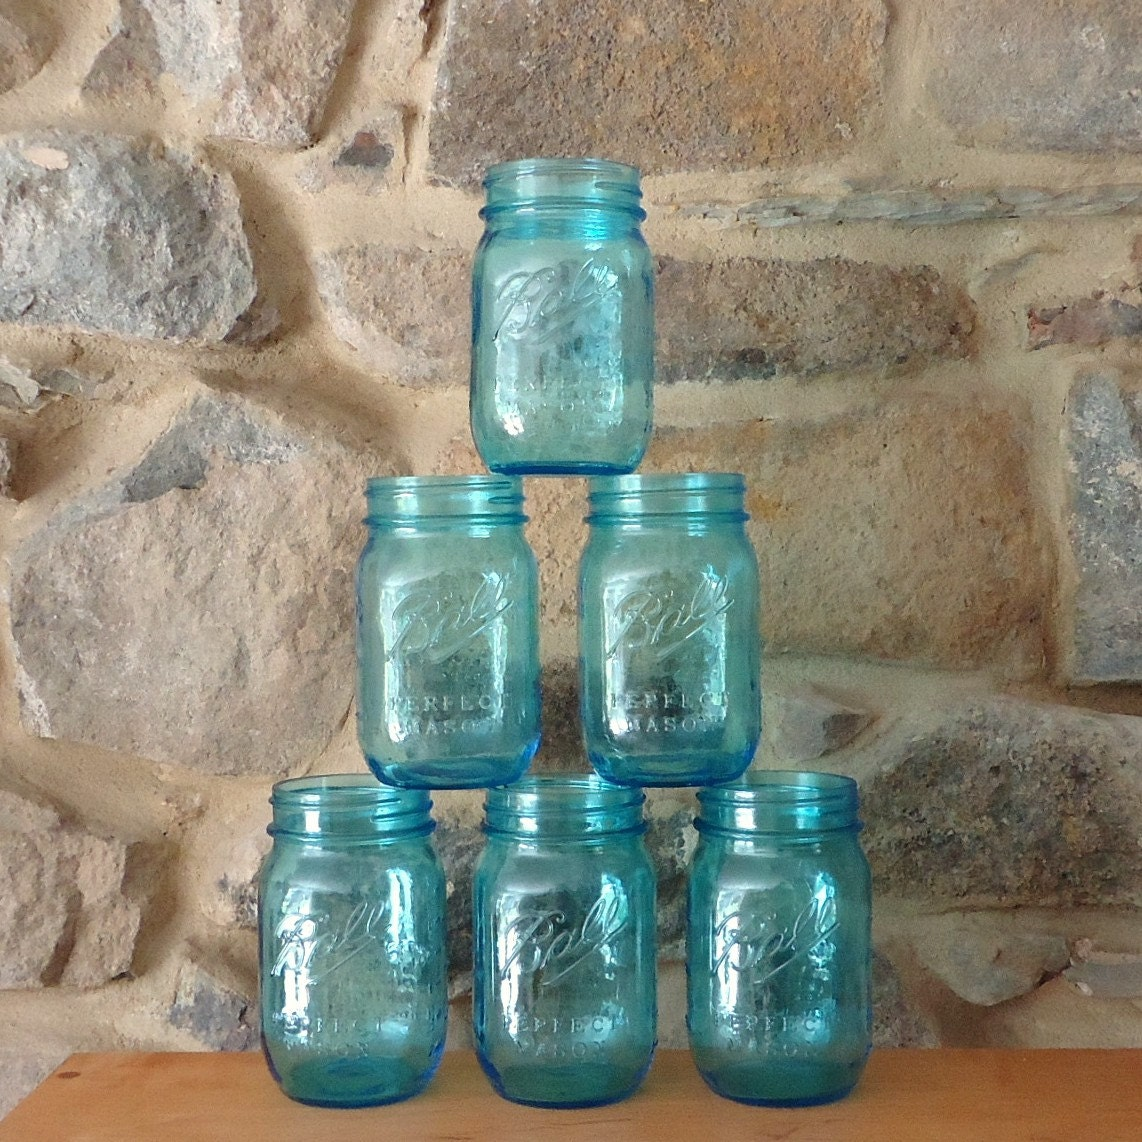 Blue mason jar drinking glasses with lids glasses with lids - Mason jar goblets ...